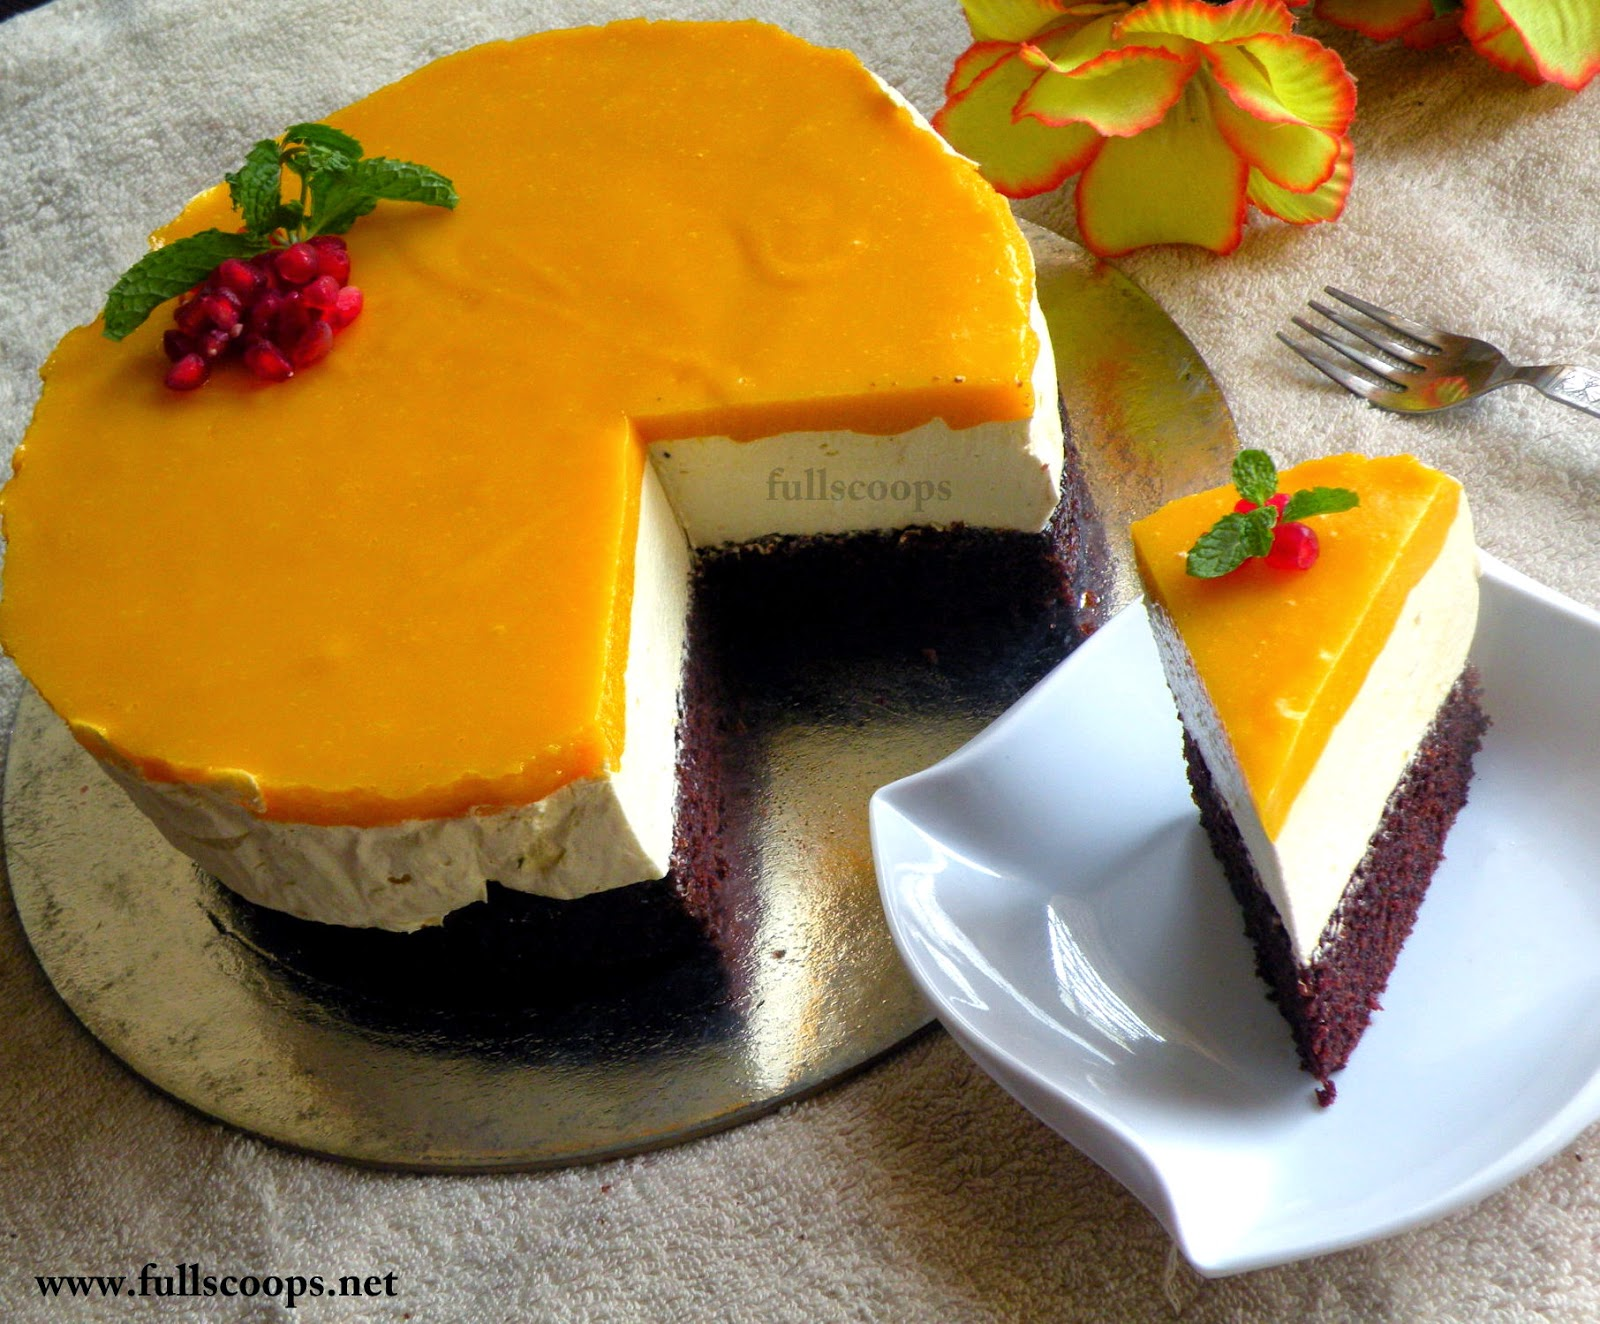 ... Eggless Chocolate Mousse Cake and the Eggless Strawberry Mousse Cake